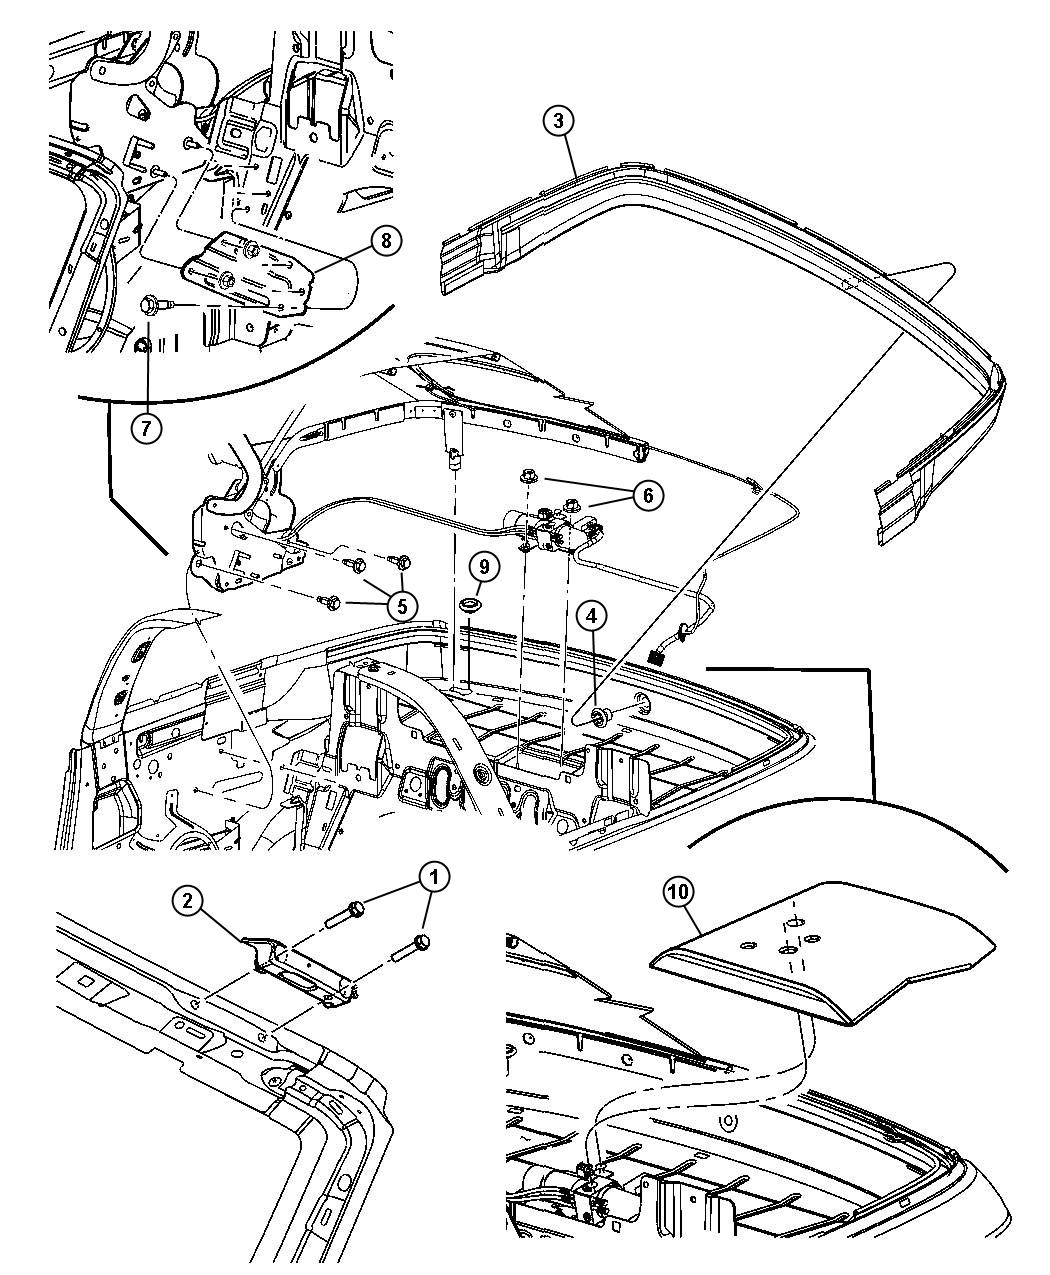 convertible top attaching parts selected part 05067475ag trough. Cars Review. Best American Auto & Cars Review